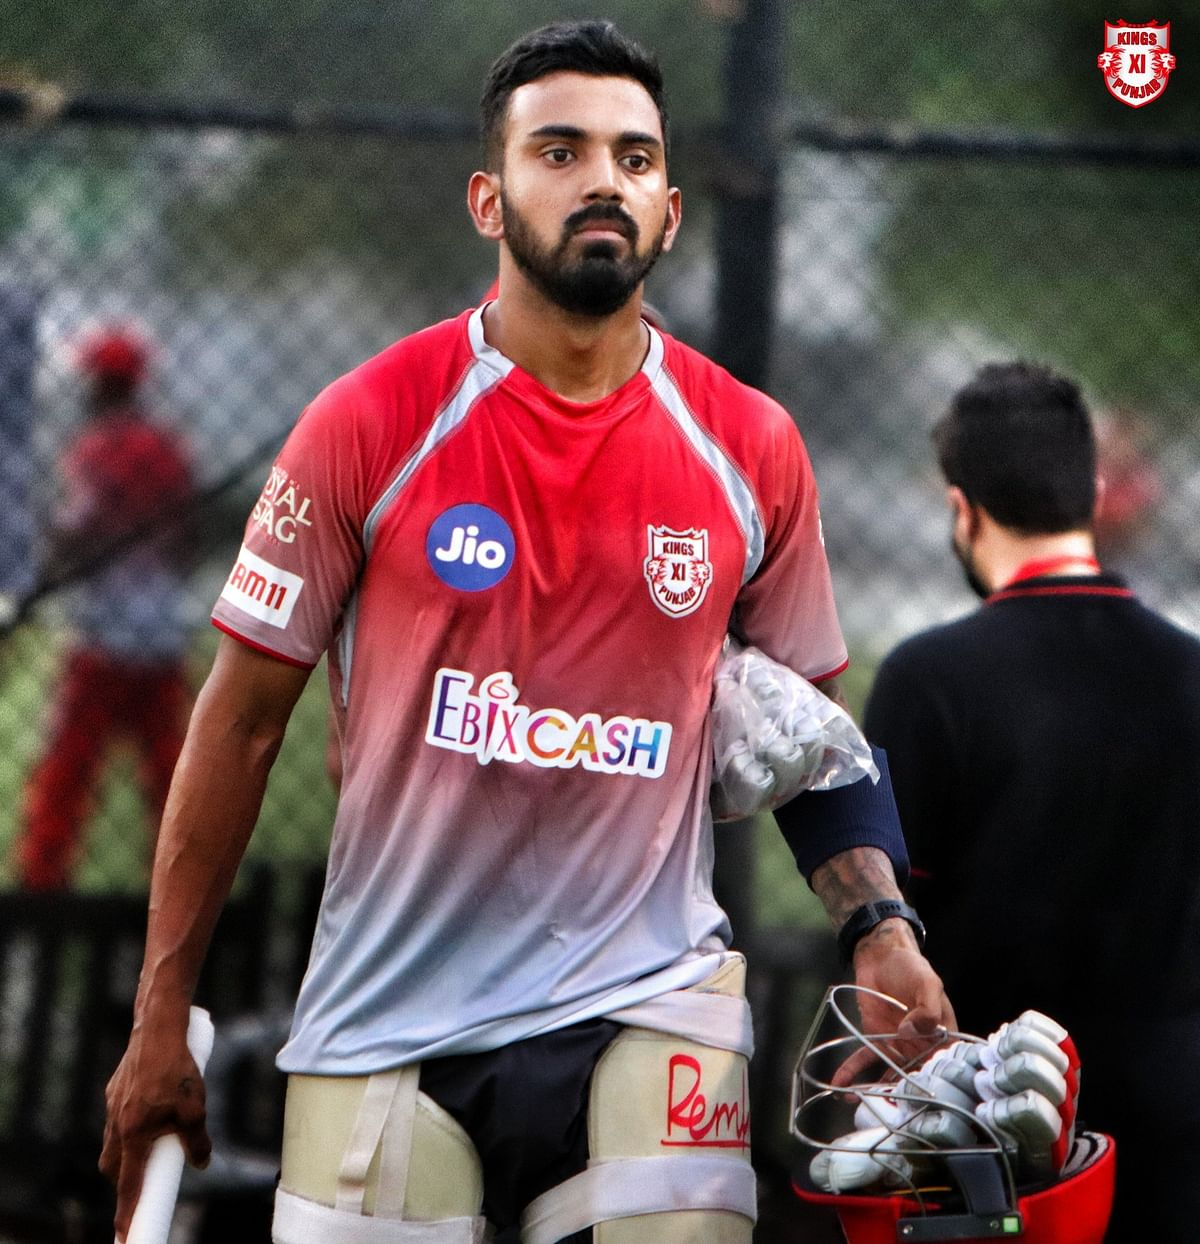 KL Rahul has 659 and 593 runs in the 2018 and 2019 season of the IPL respectively